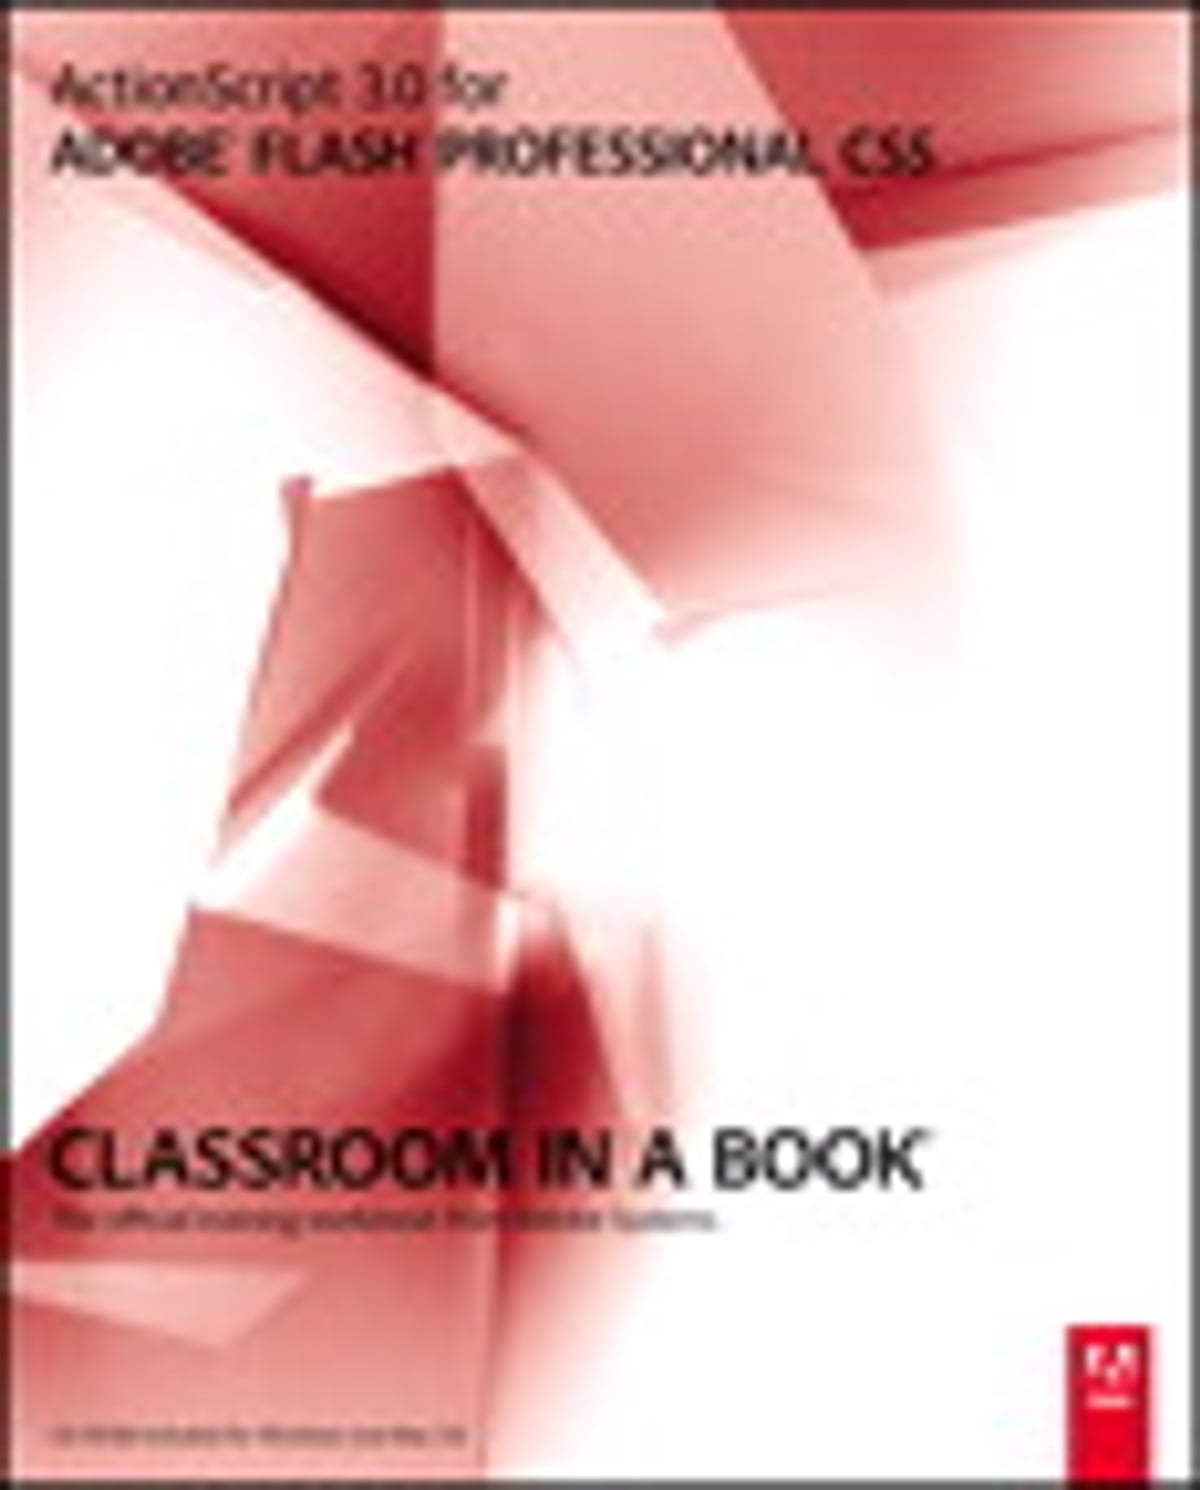 how to buy Photoshop CS5 Classroom in a Book mac?